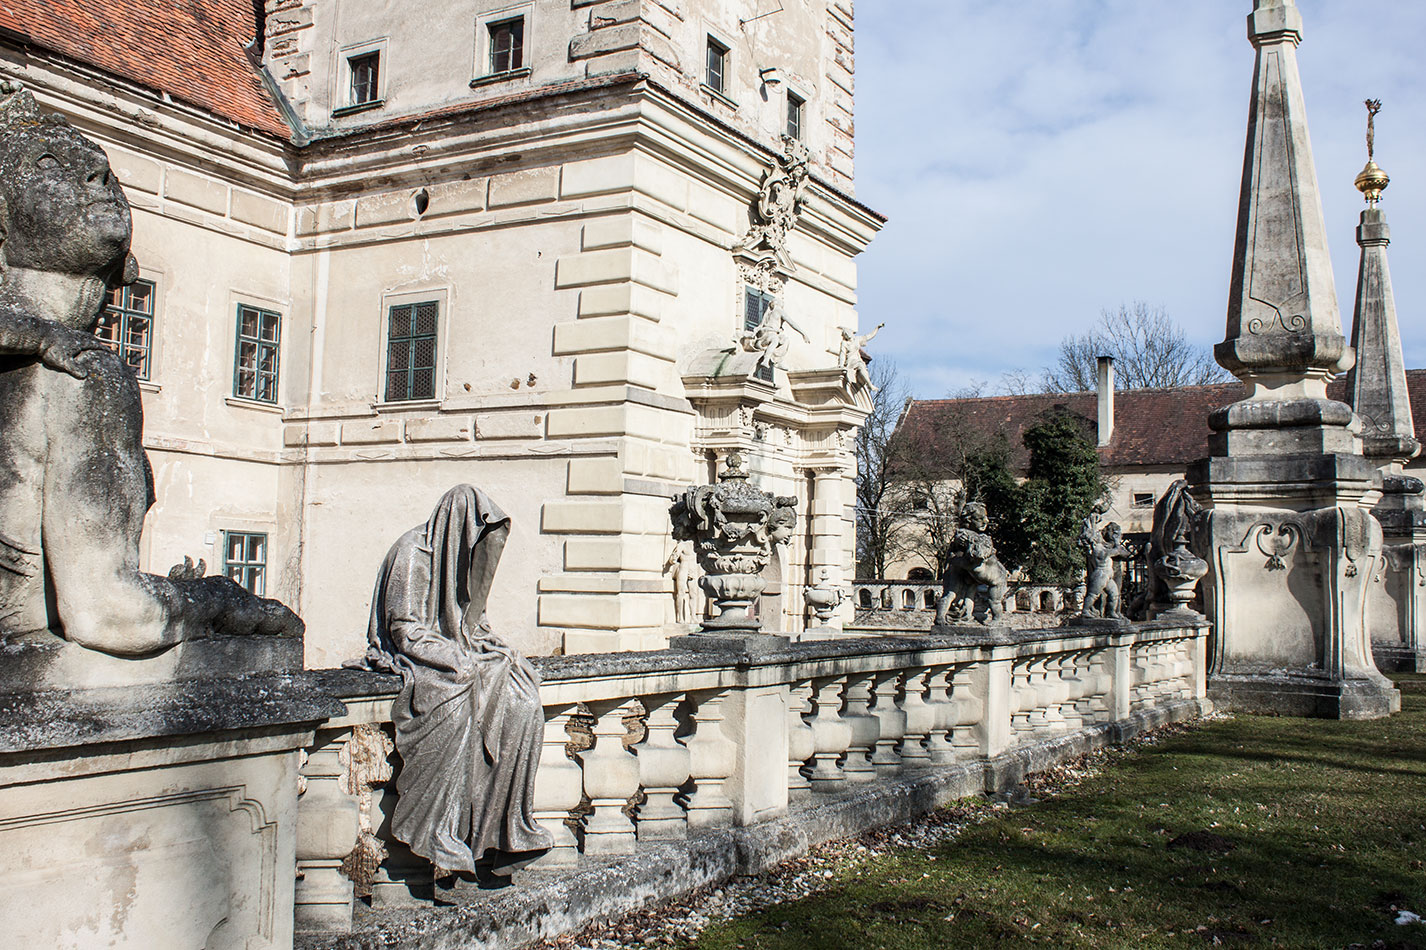 castle-greilenstein-lower-austria-wood-quater-waldviertel-guardians-of-time-contemporary-art-sculpture-design-antique-manfred-kielnhofer-7382